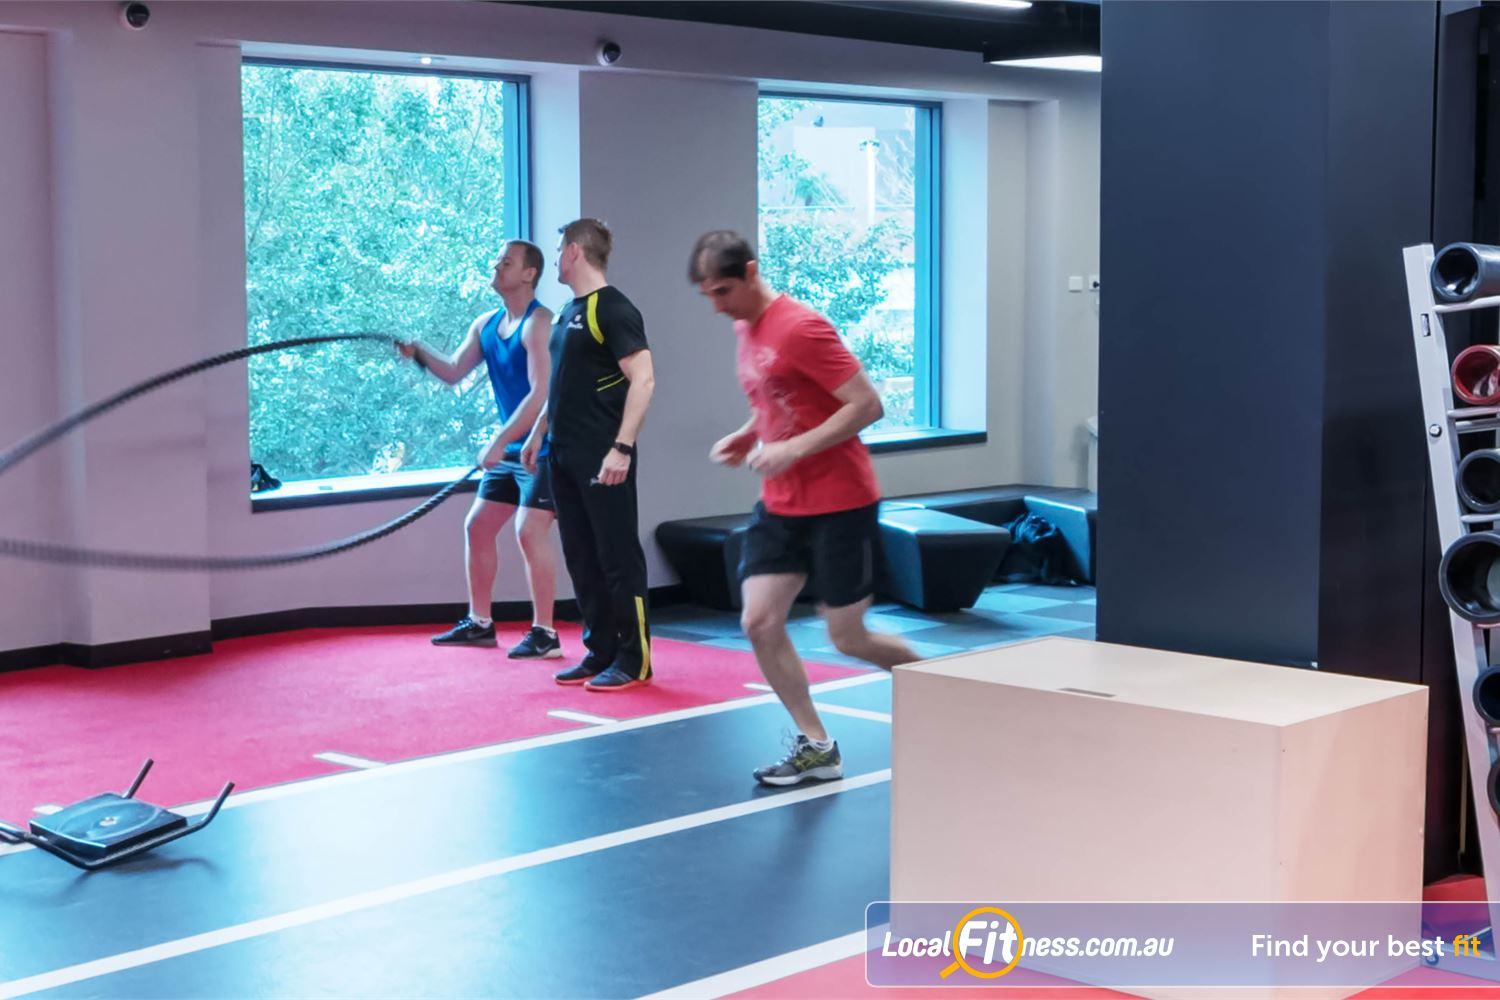 Fitness First Elizabeth Plaza North Sydney challenge your fitness with indoor sprints and battle rope training.